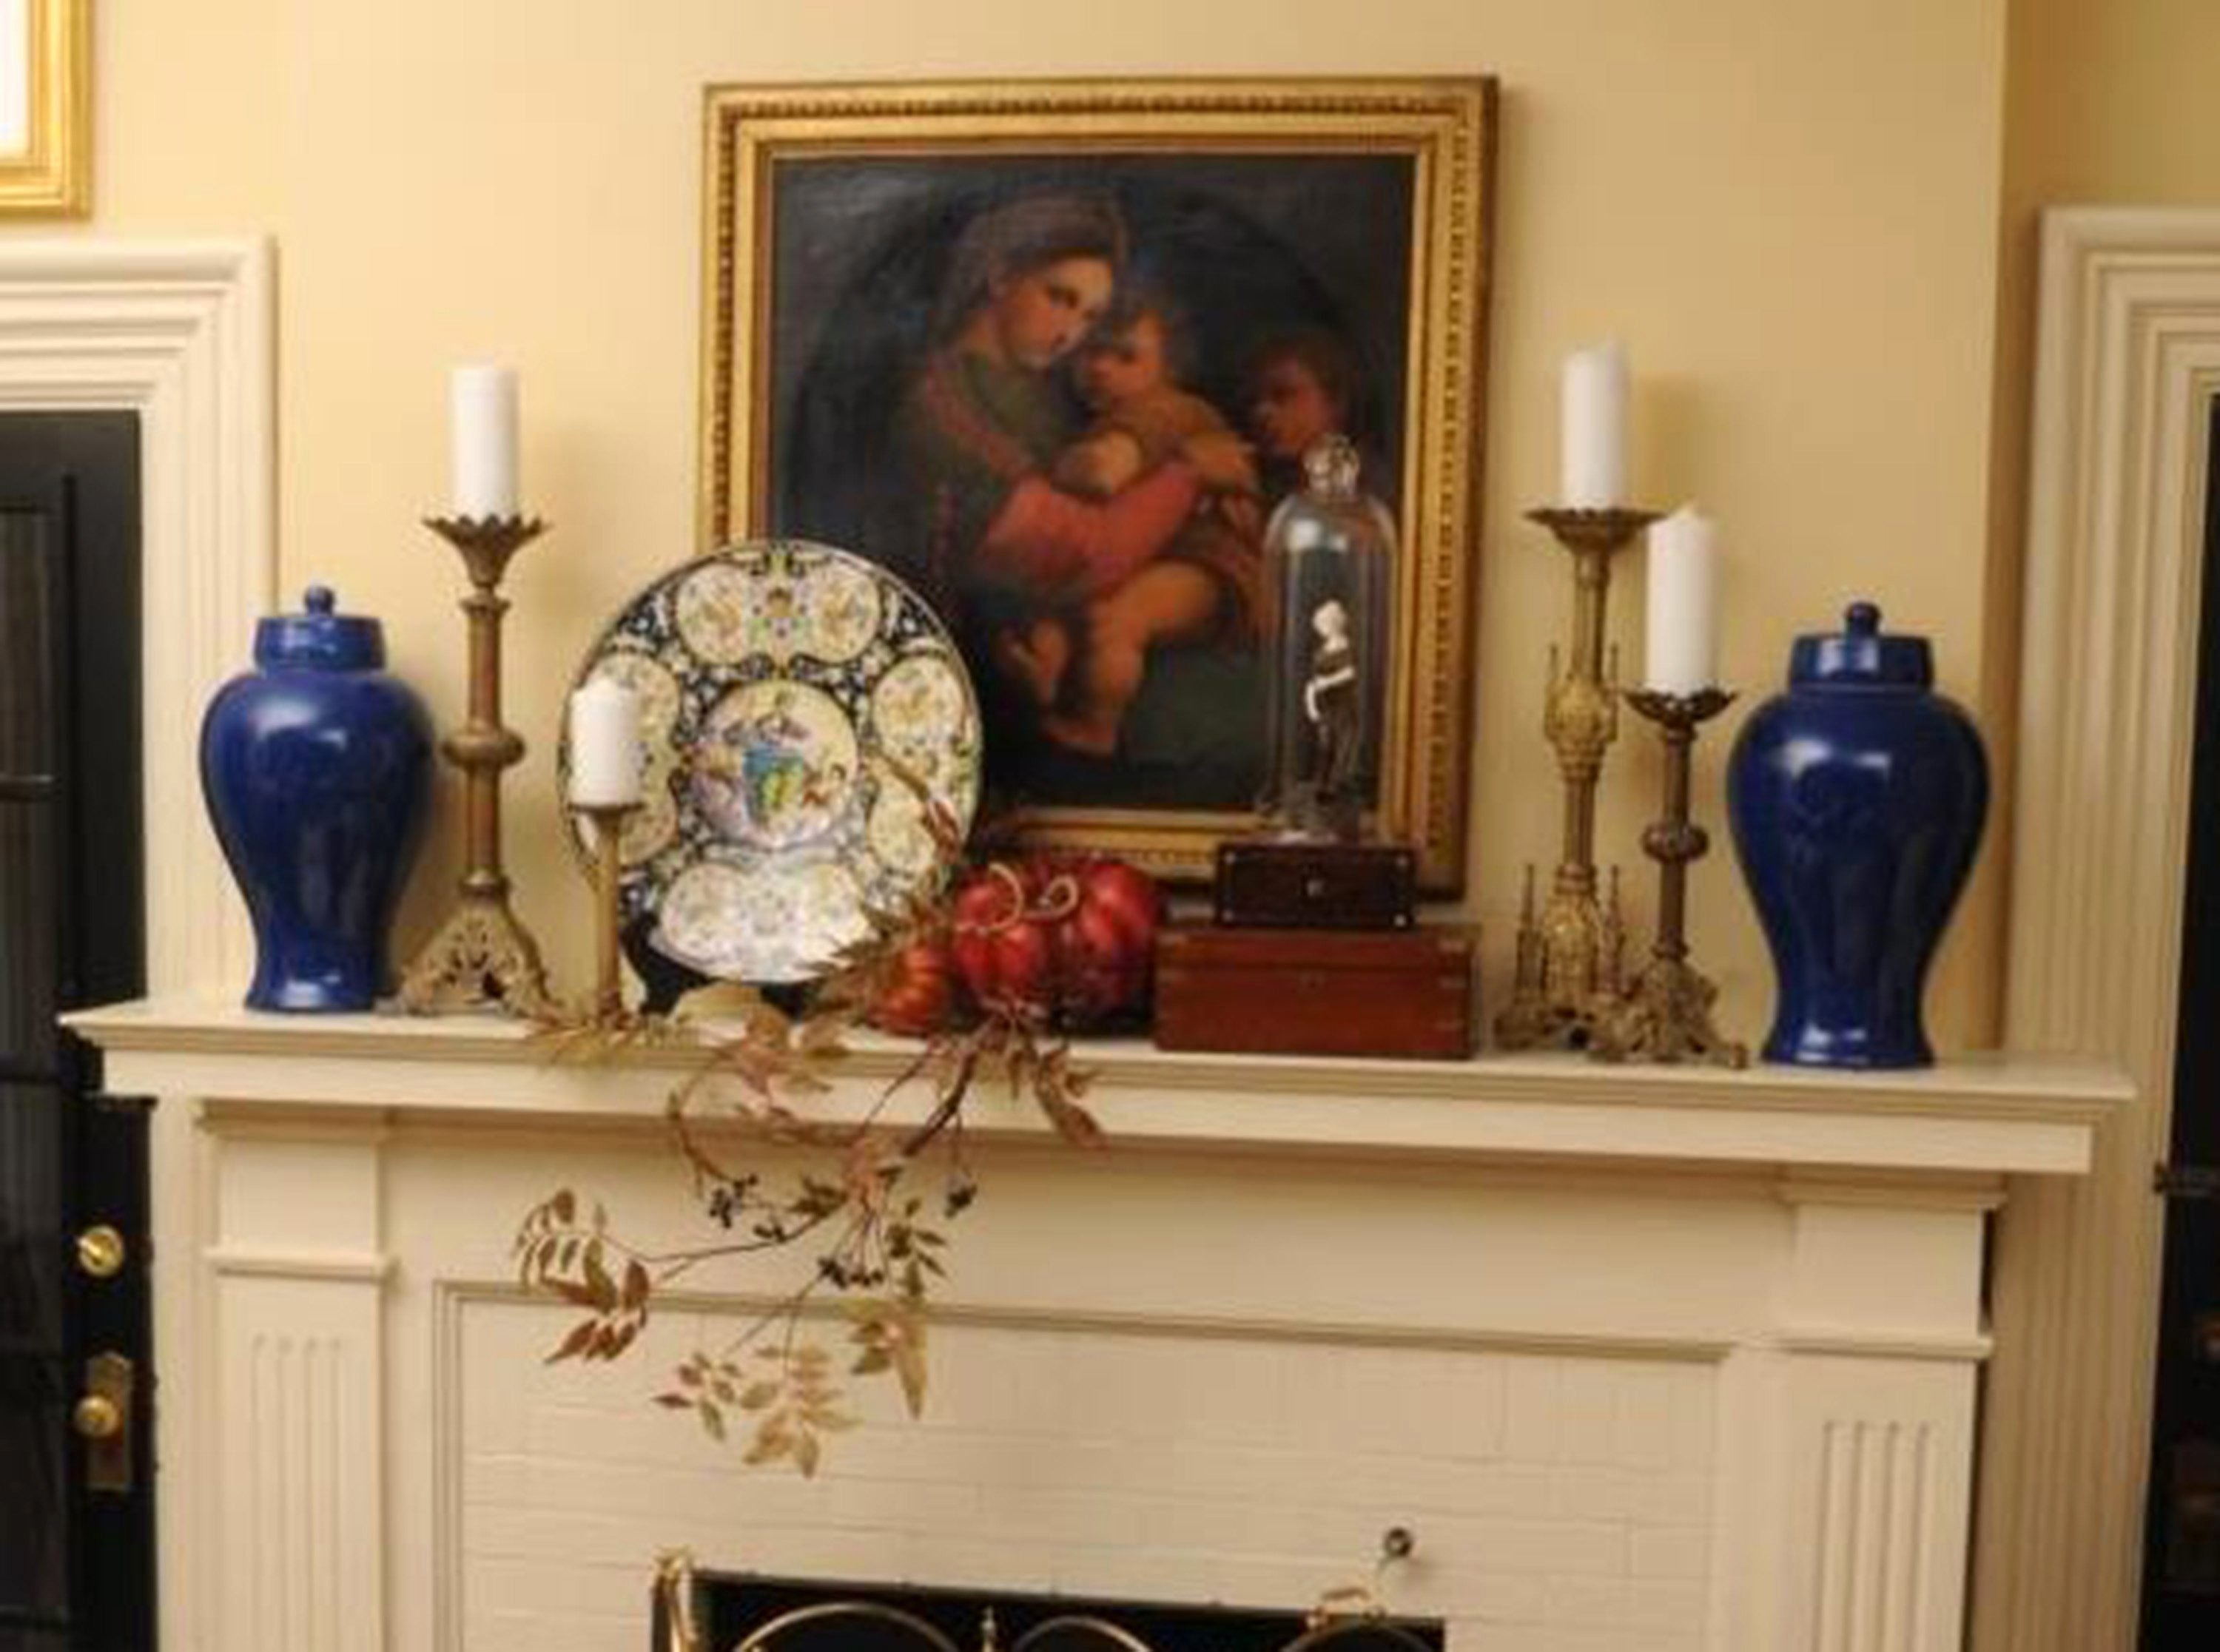 If you want to decorate your home for fall in the coming weeks, the perfect place to start is your fireplace mantel – one of the most visible spots in the house.